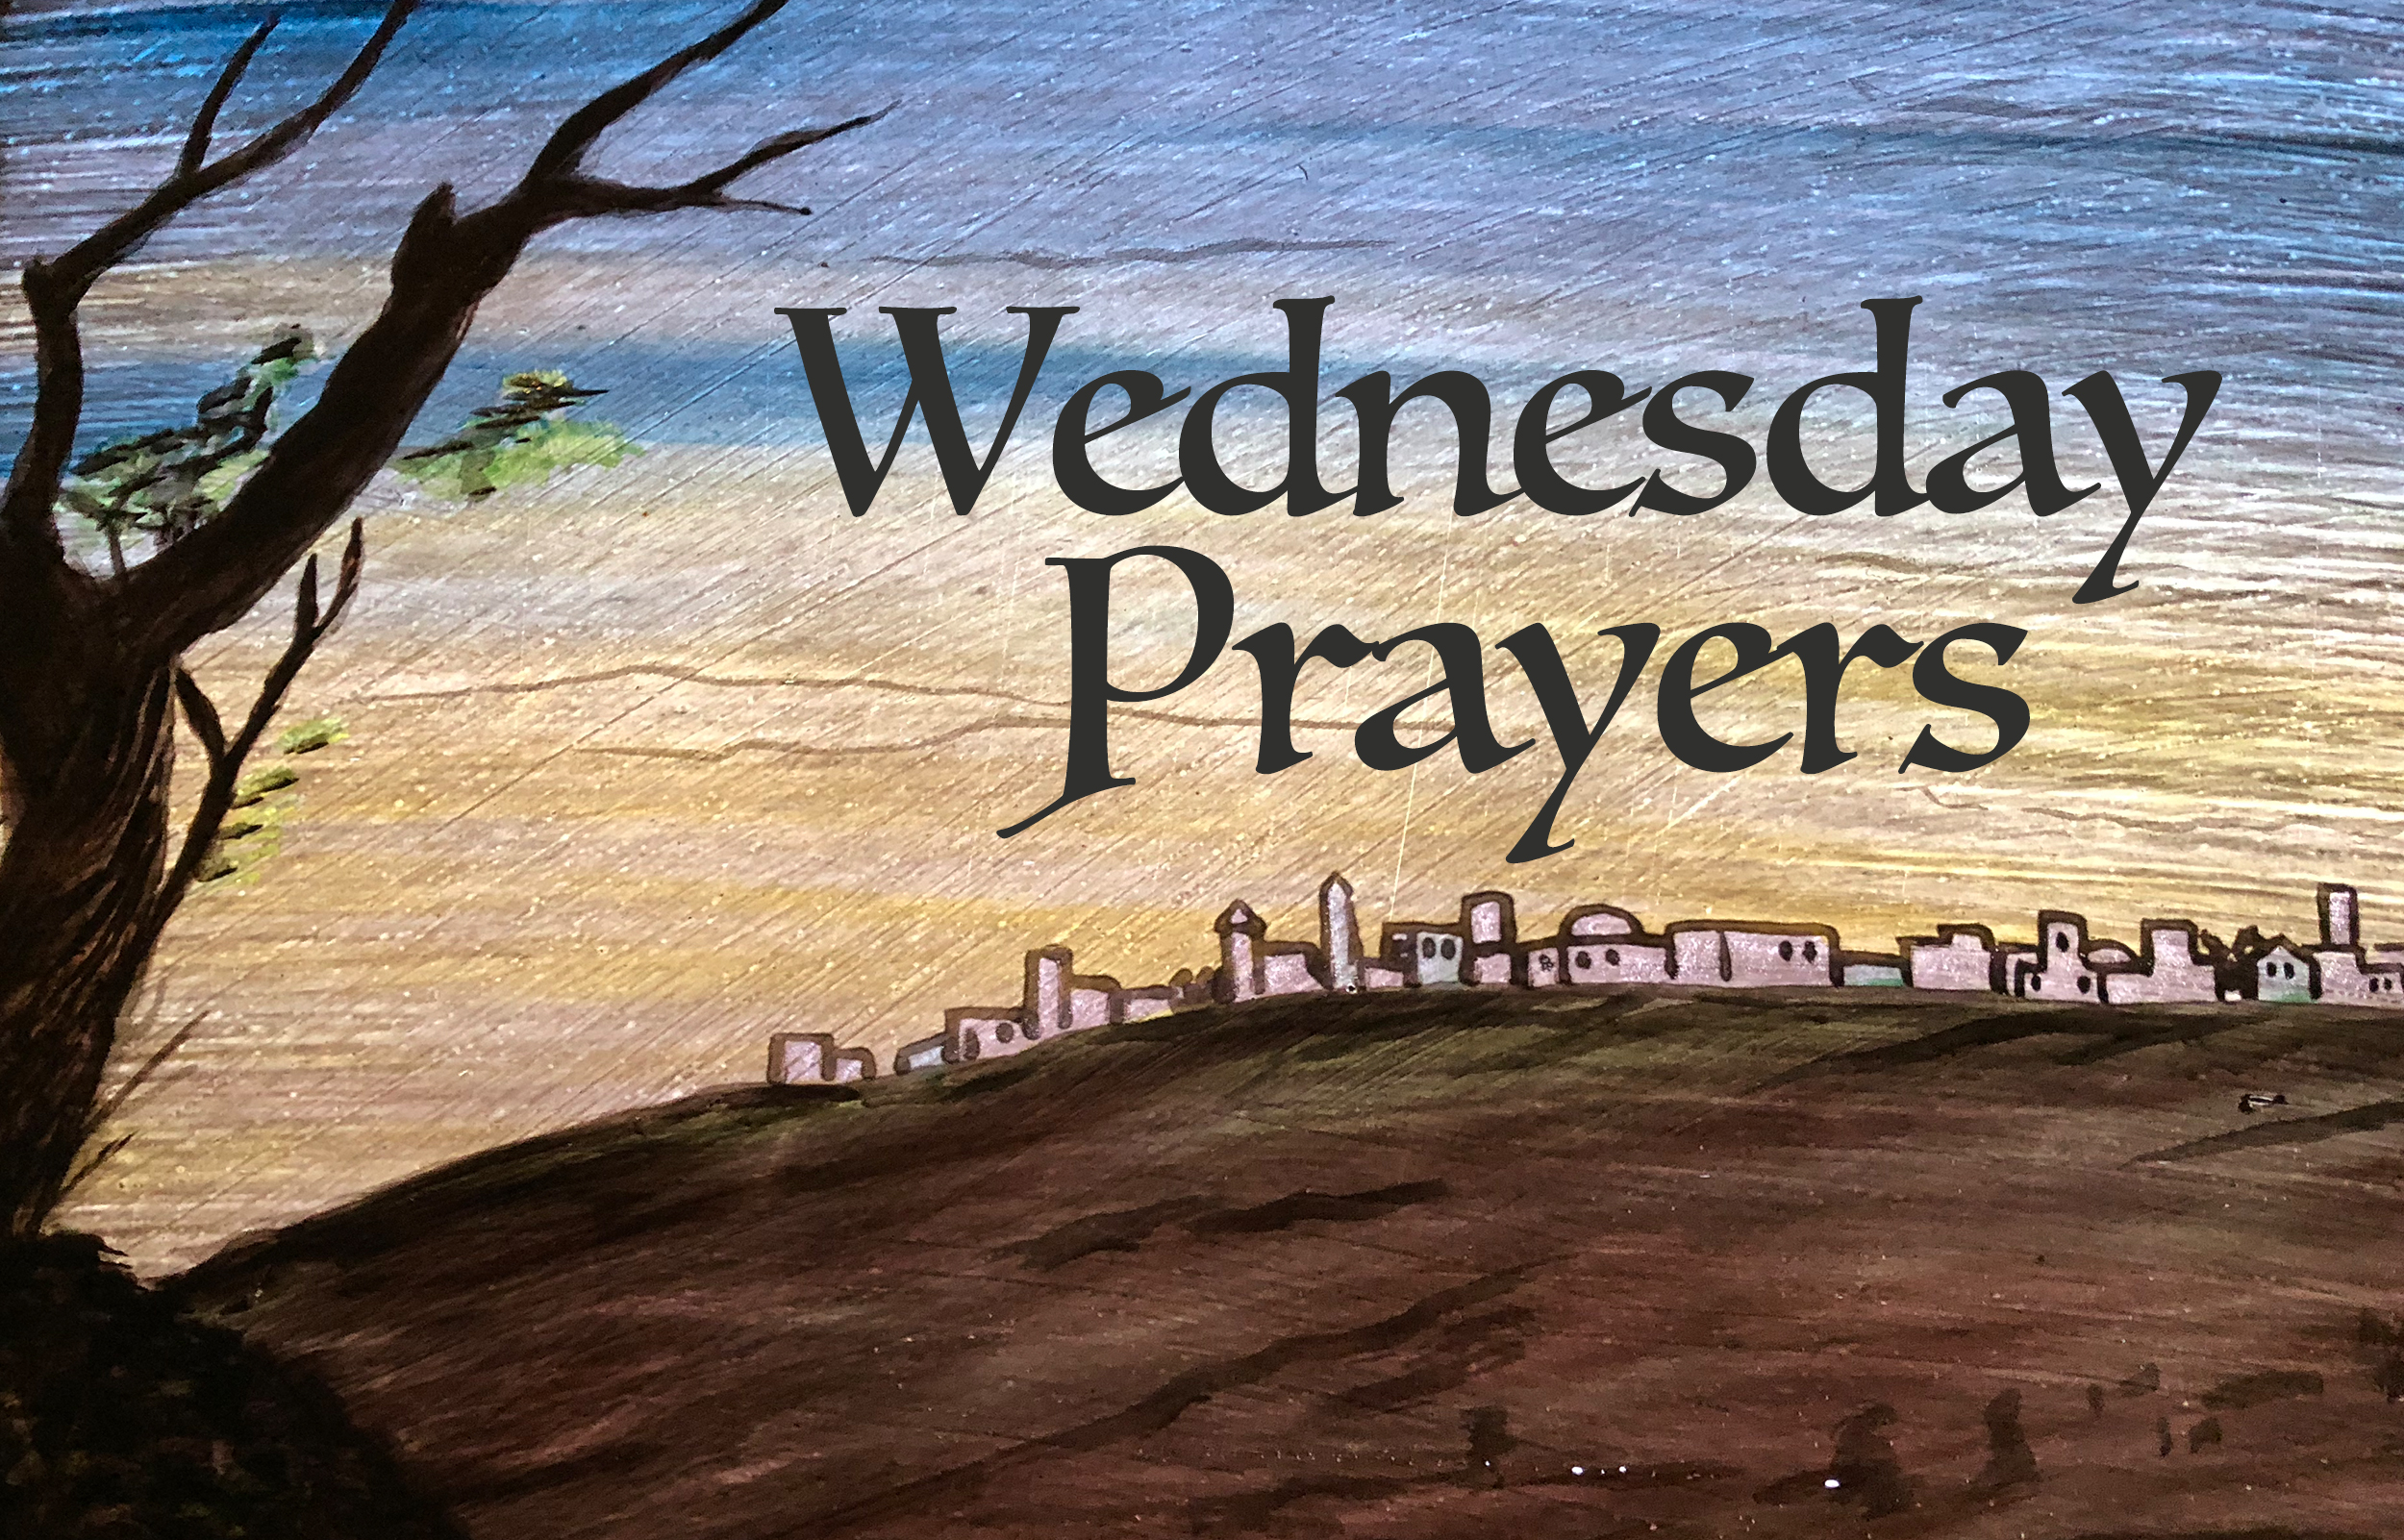 Wednesday Prayer